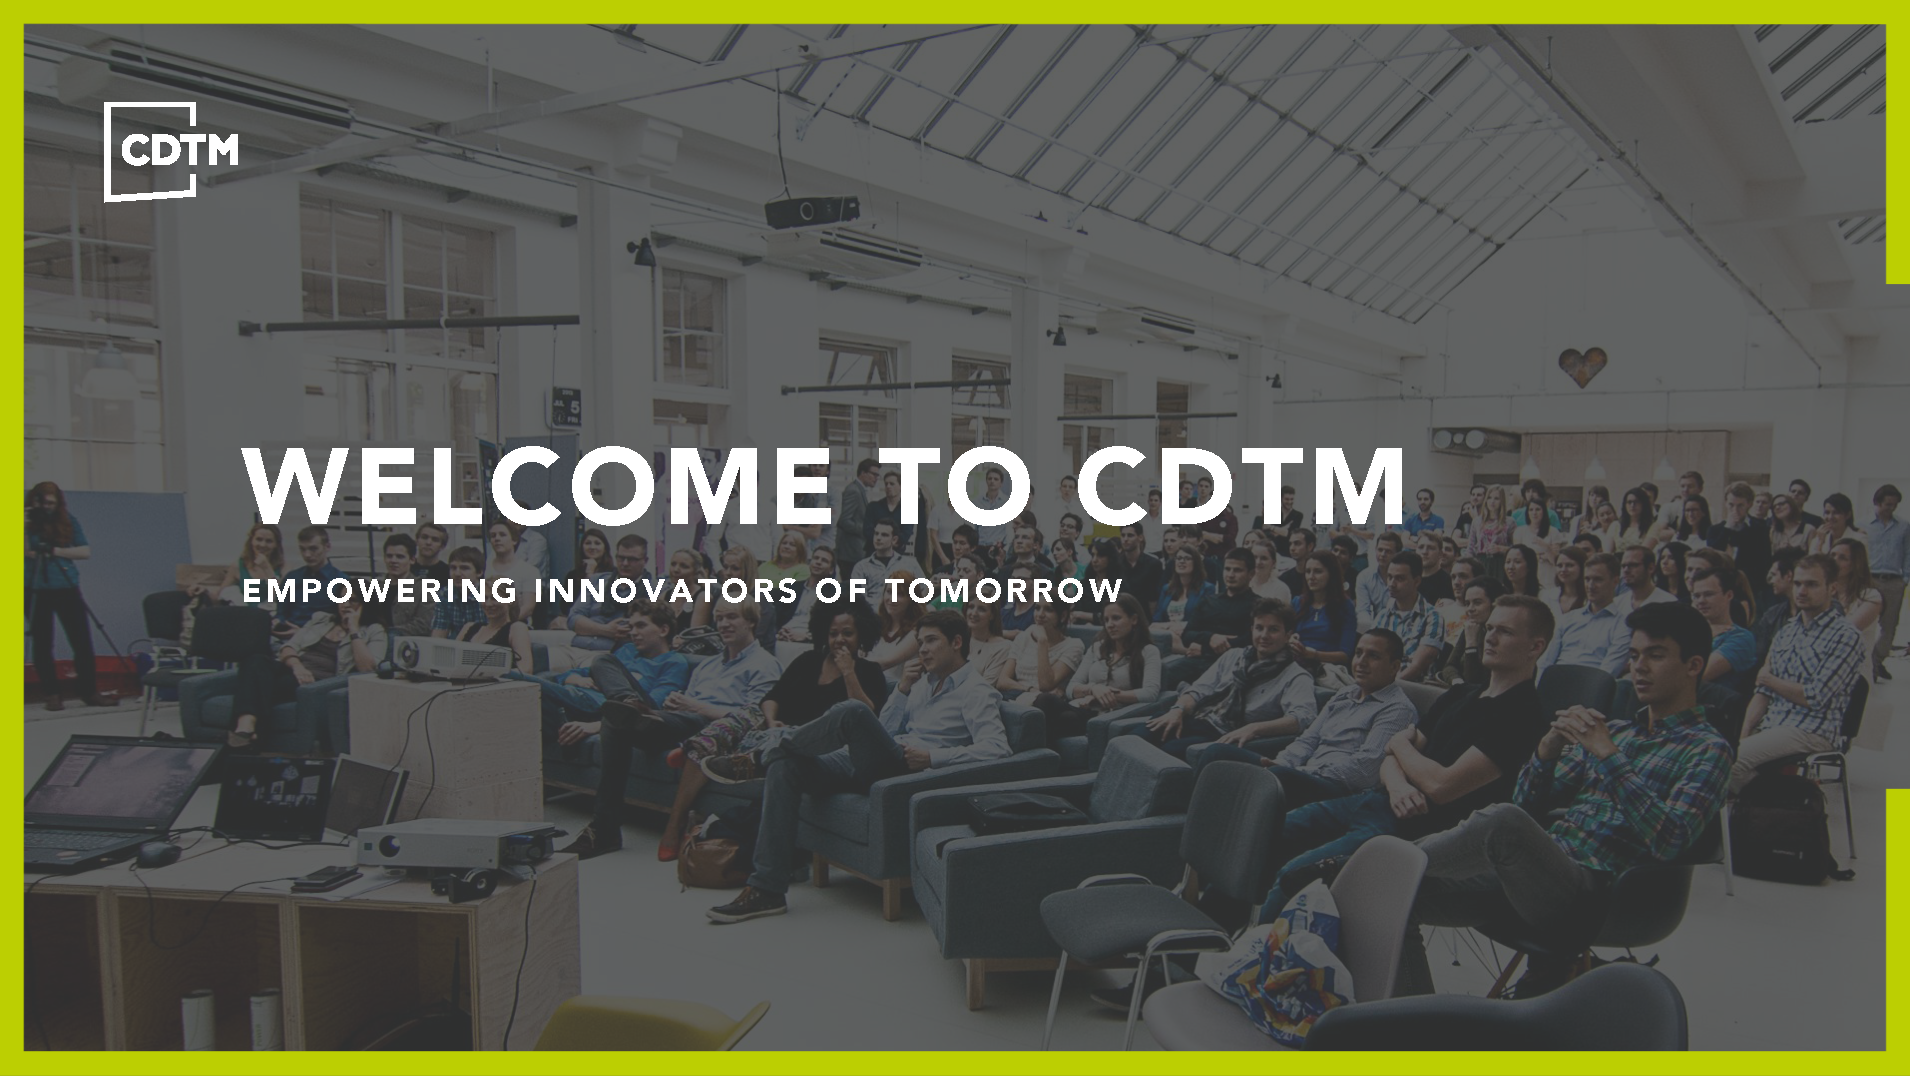 Welcome to CDTM! - Laura Bechthold, CDTM